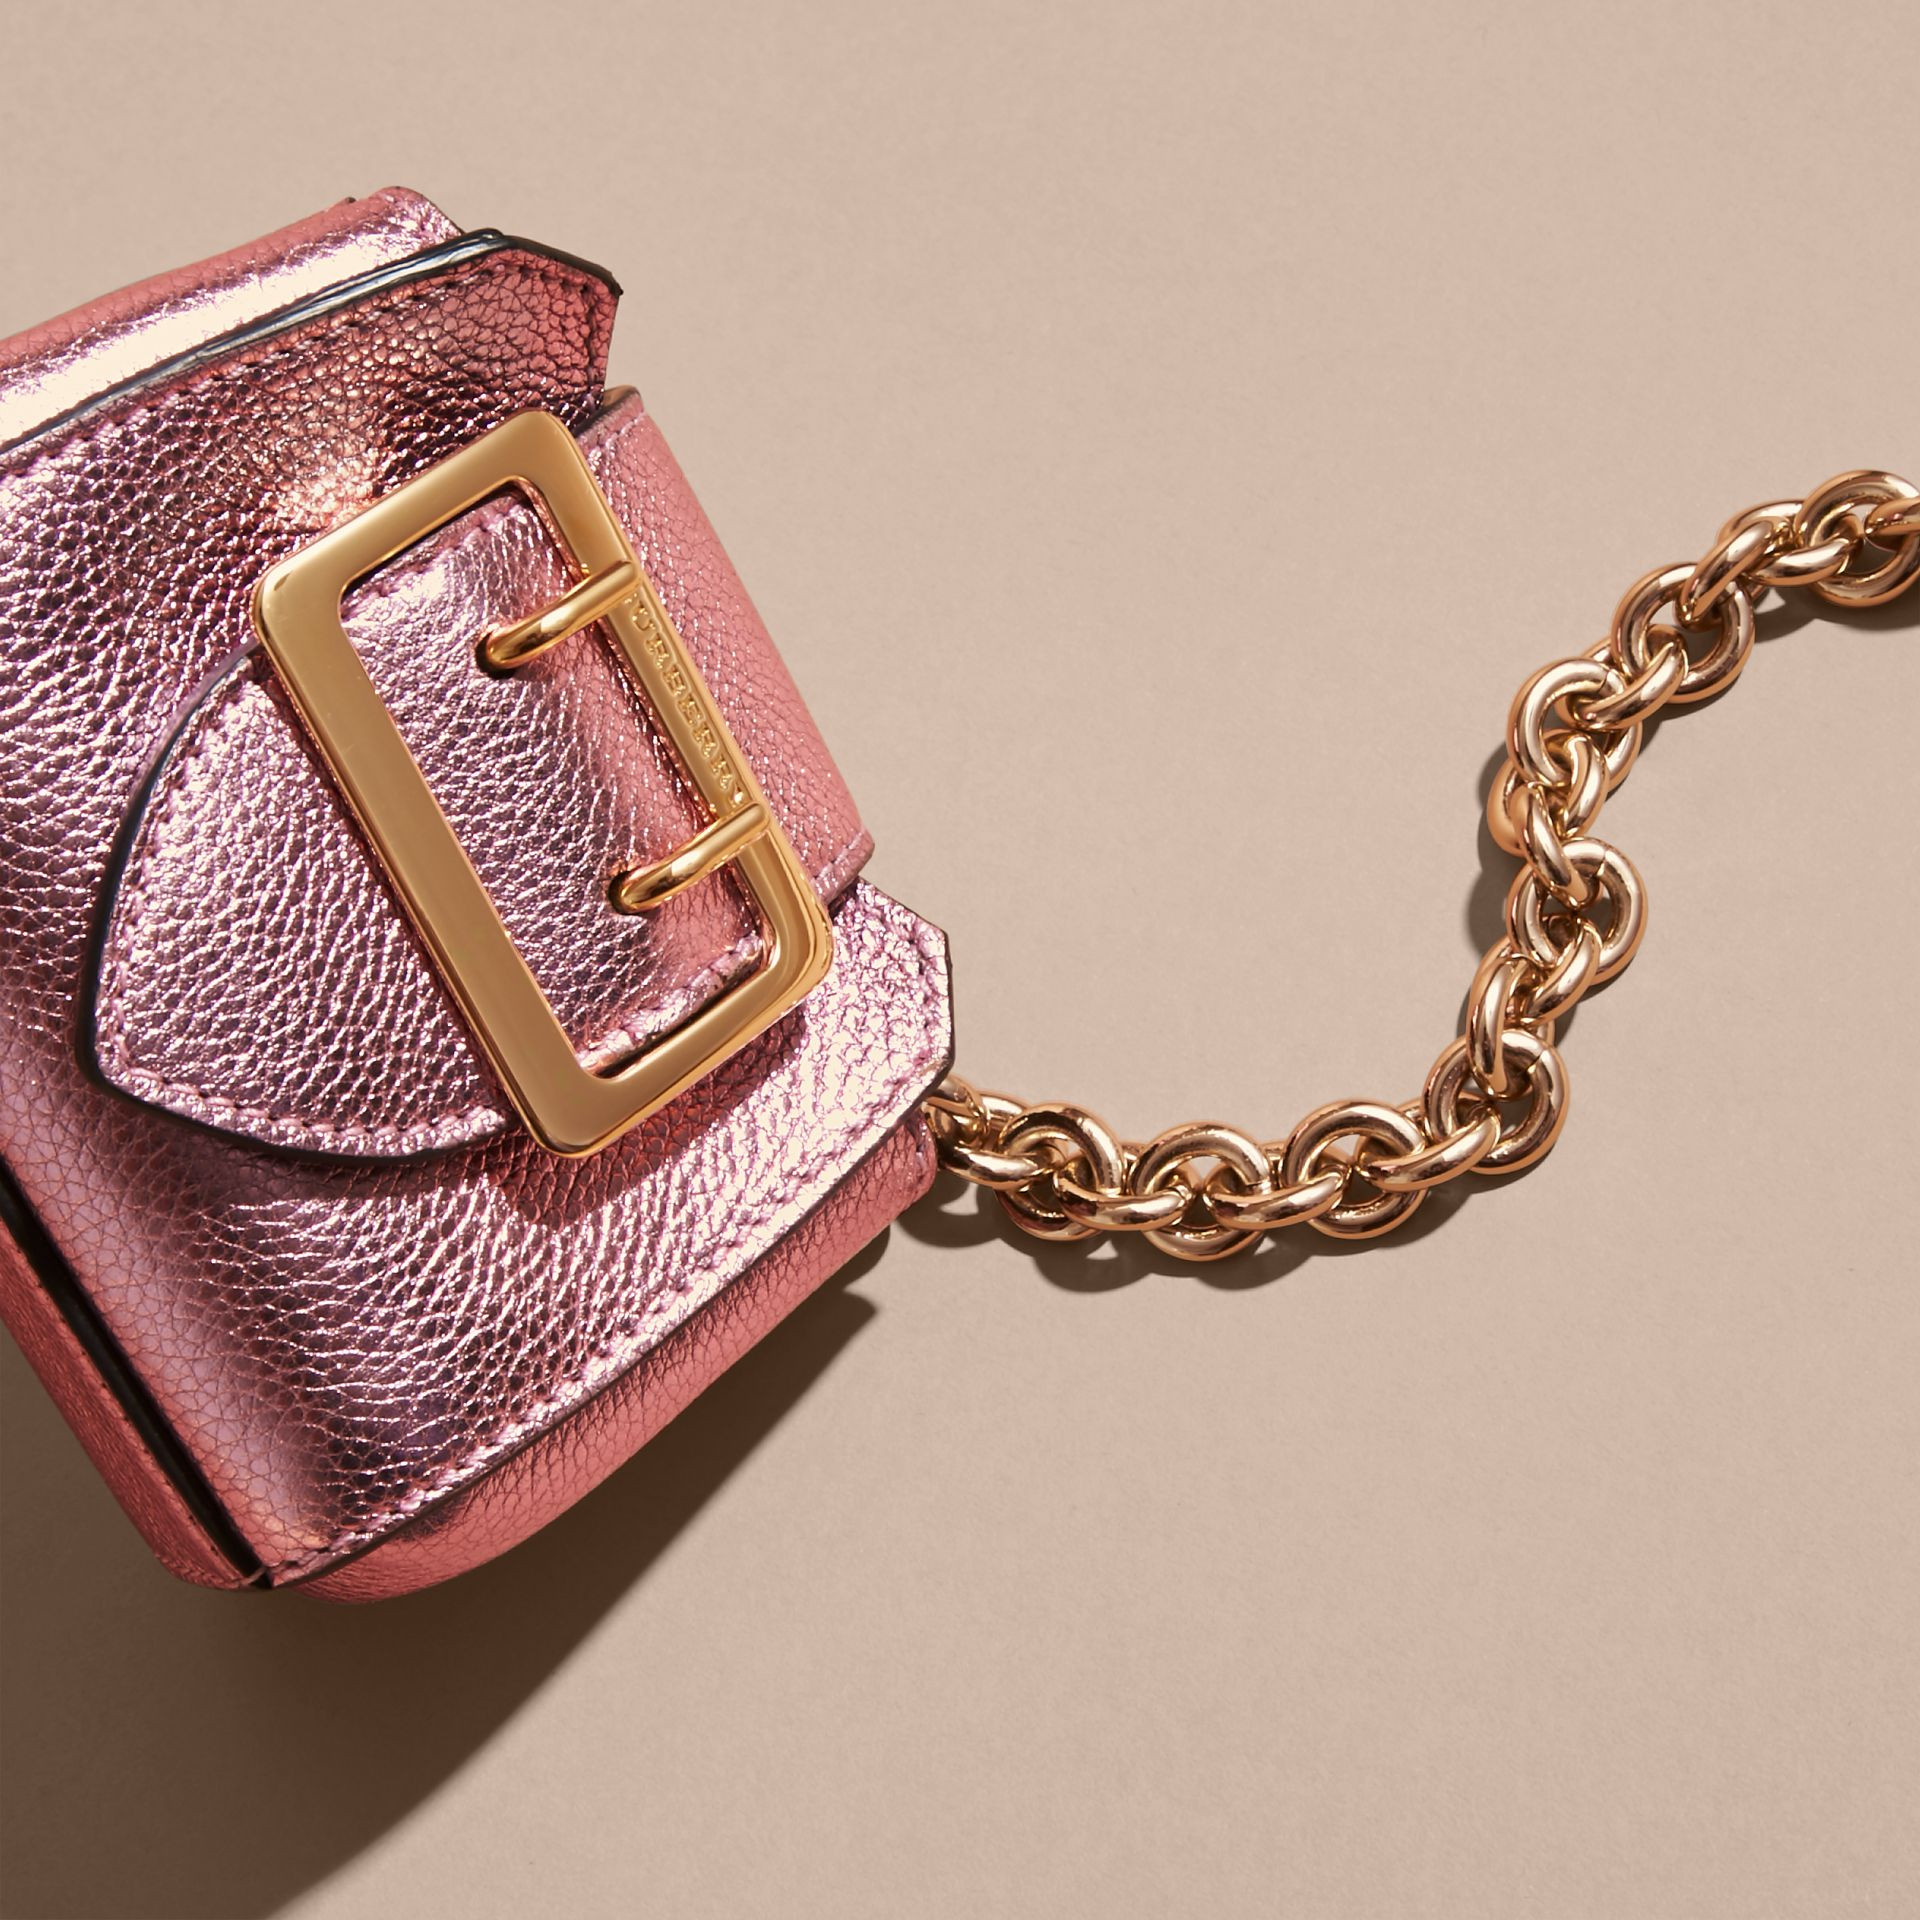 The Mini Buckle Tote Charm in Metallic Leather in Pale Orchid - gallery image 3